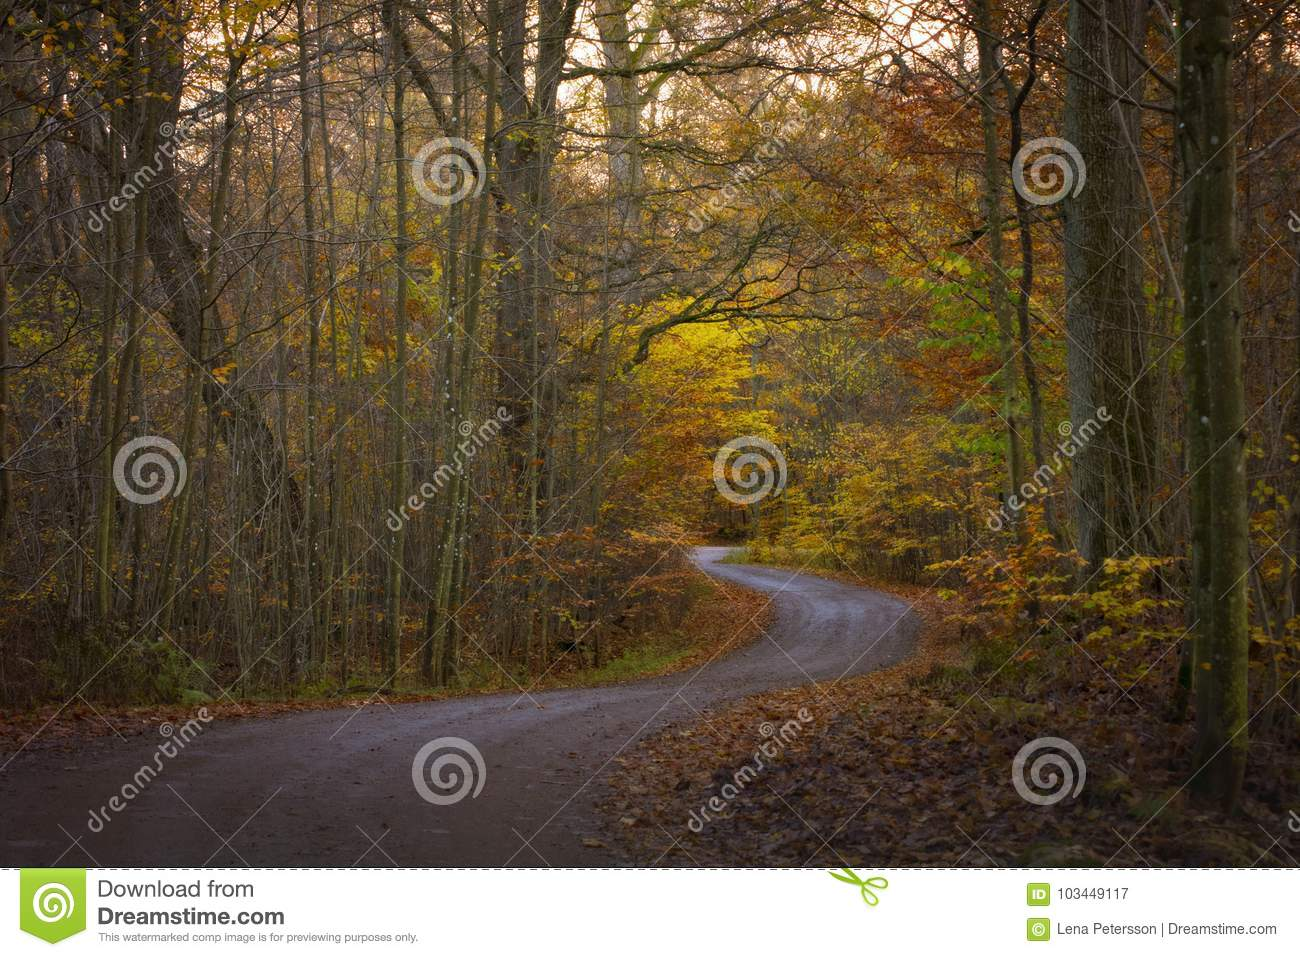 The Road Trough Autumn Forest Wallpaper